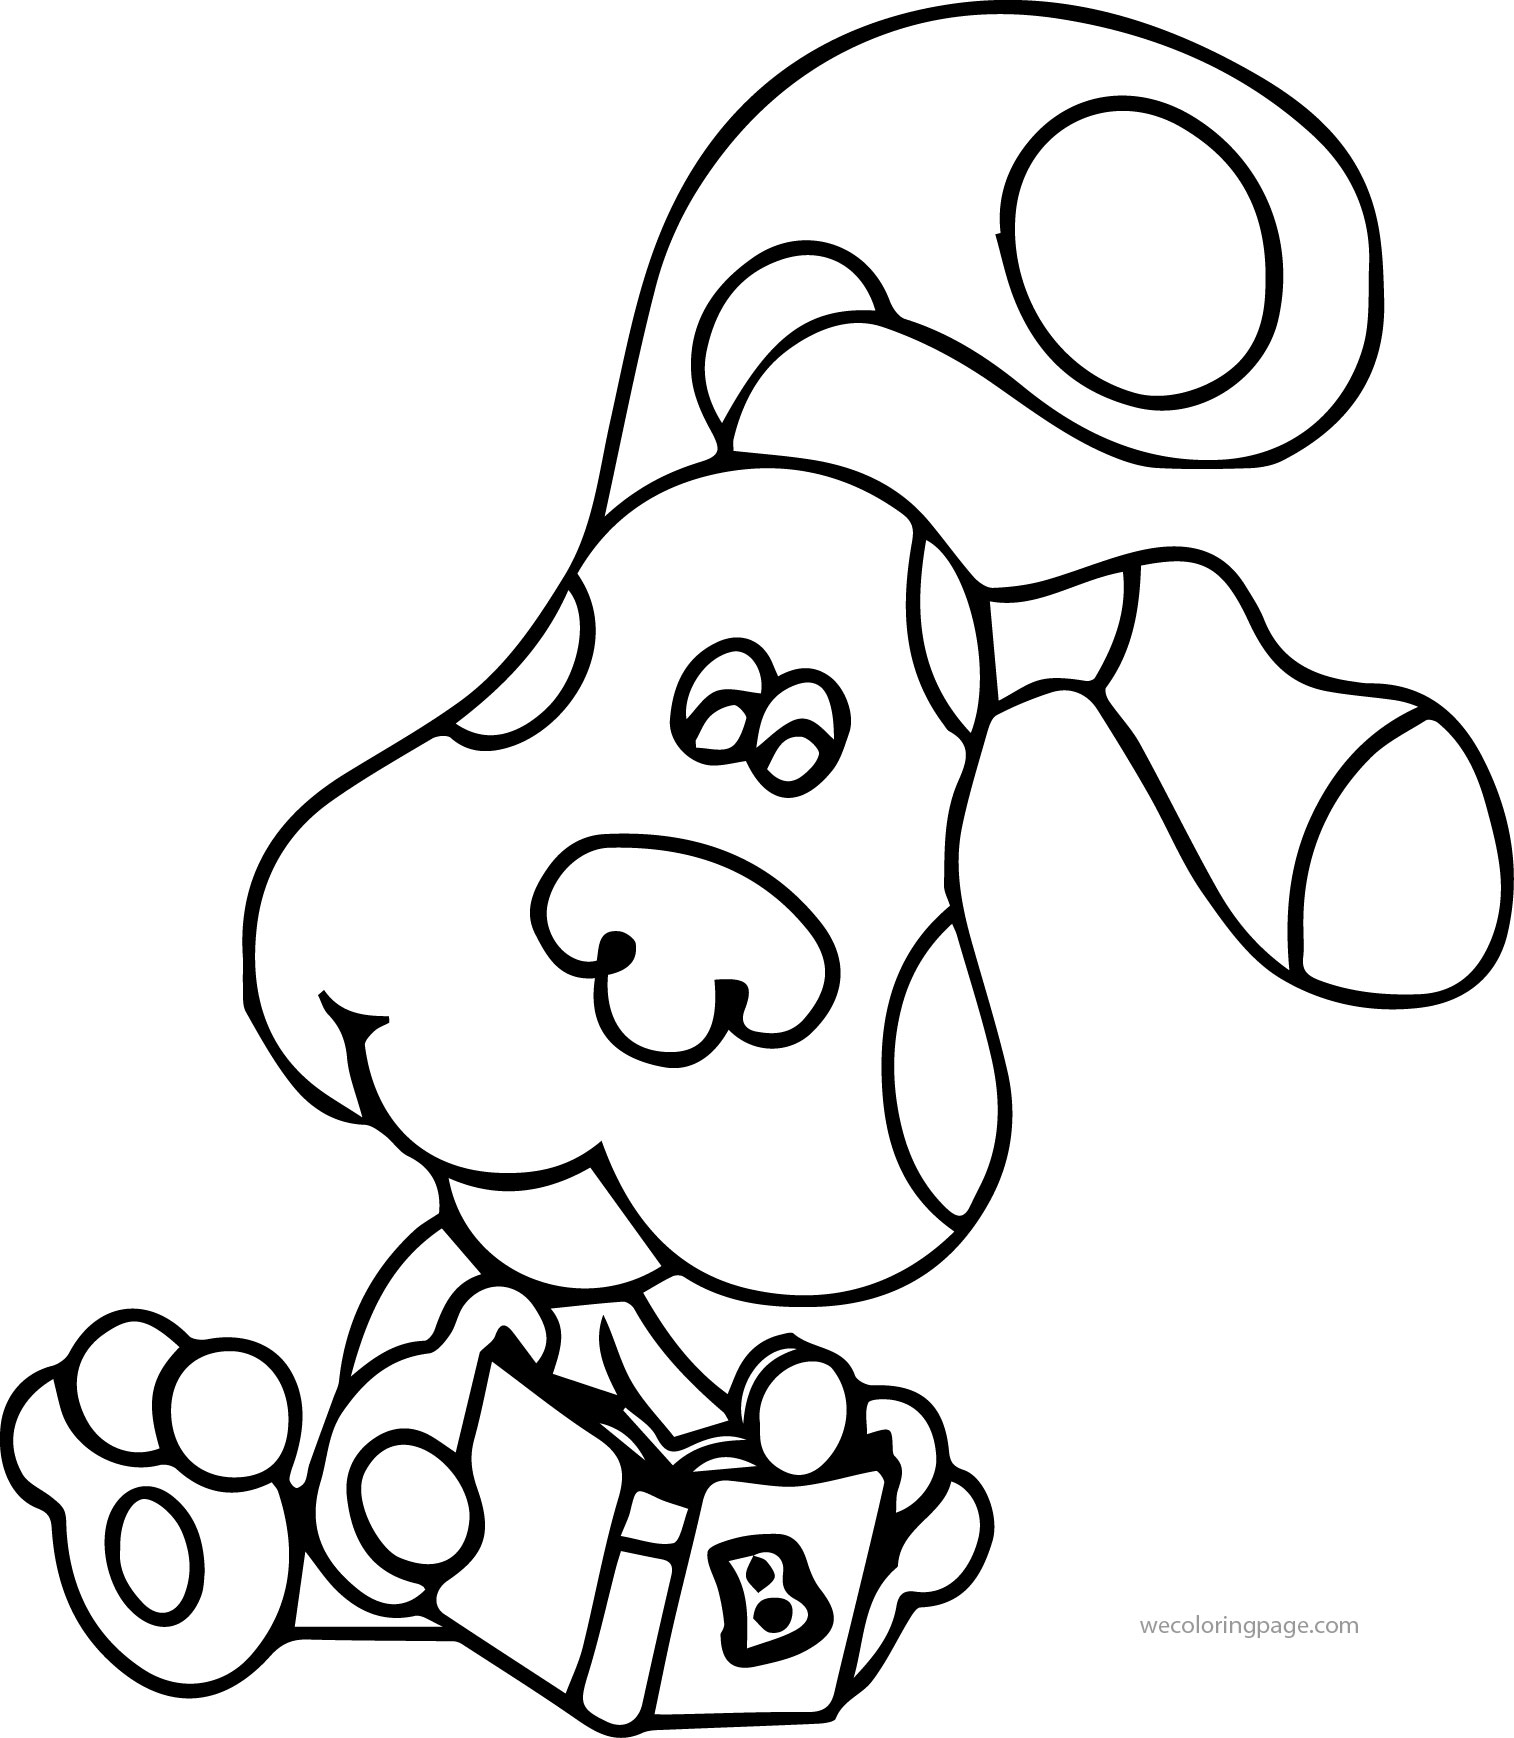 Blue's Clues Reading Book Coloring Page